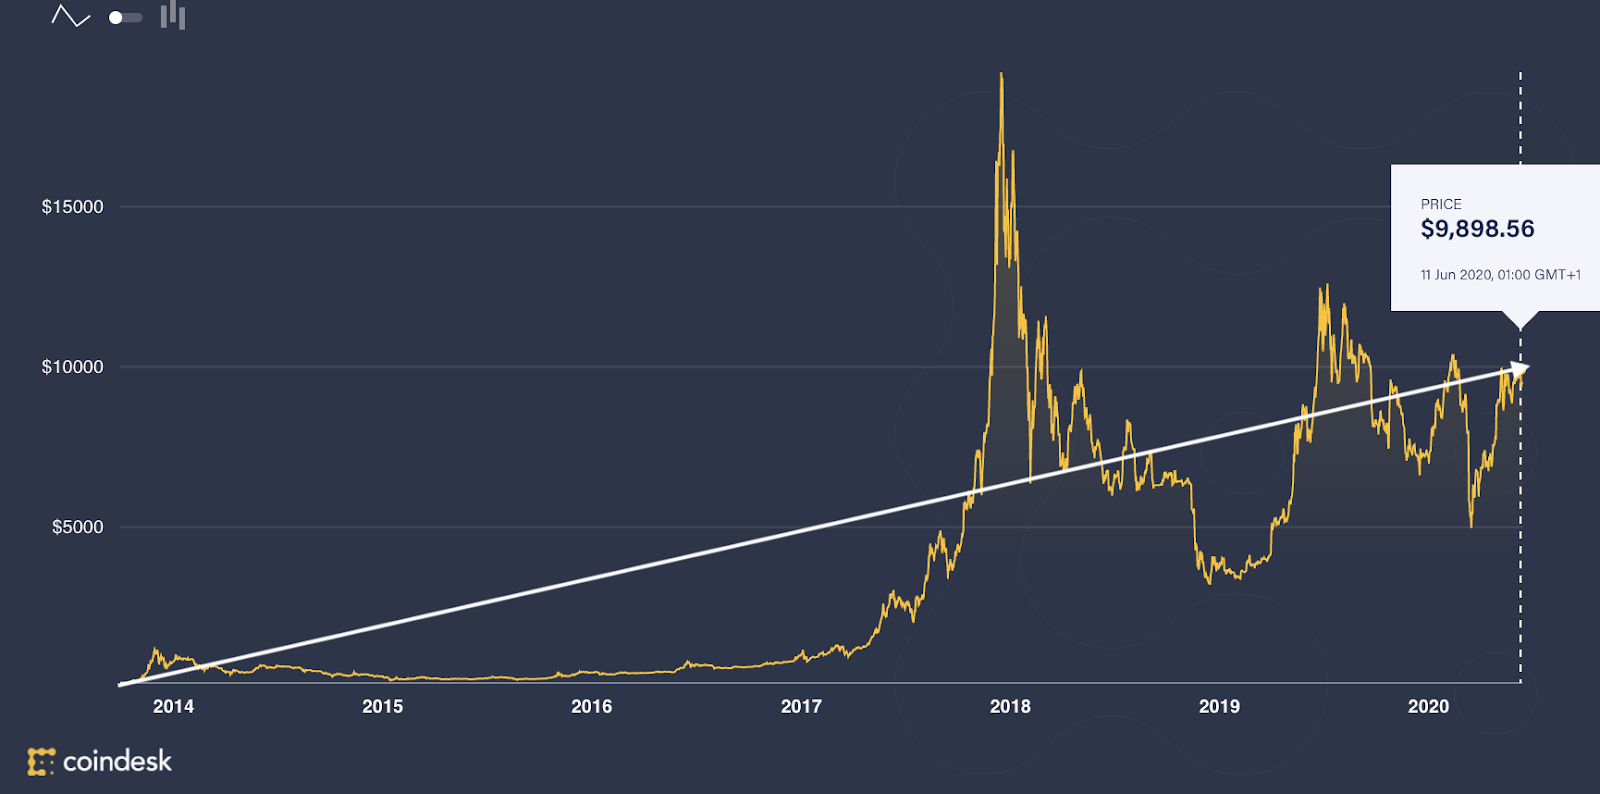 Cryptocurrencies: Graph showing the value of bitcoin from 2014 to 2020